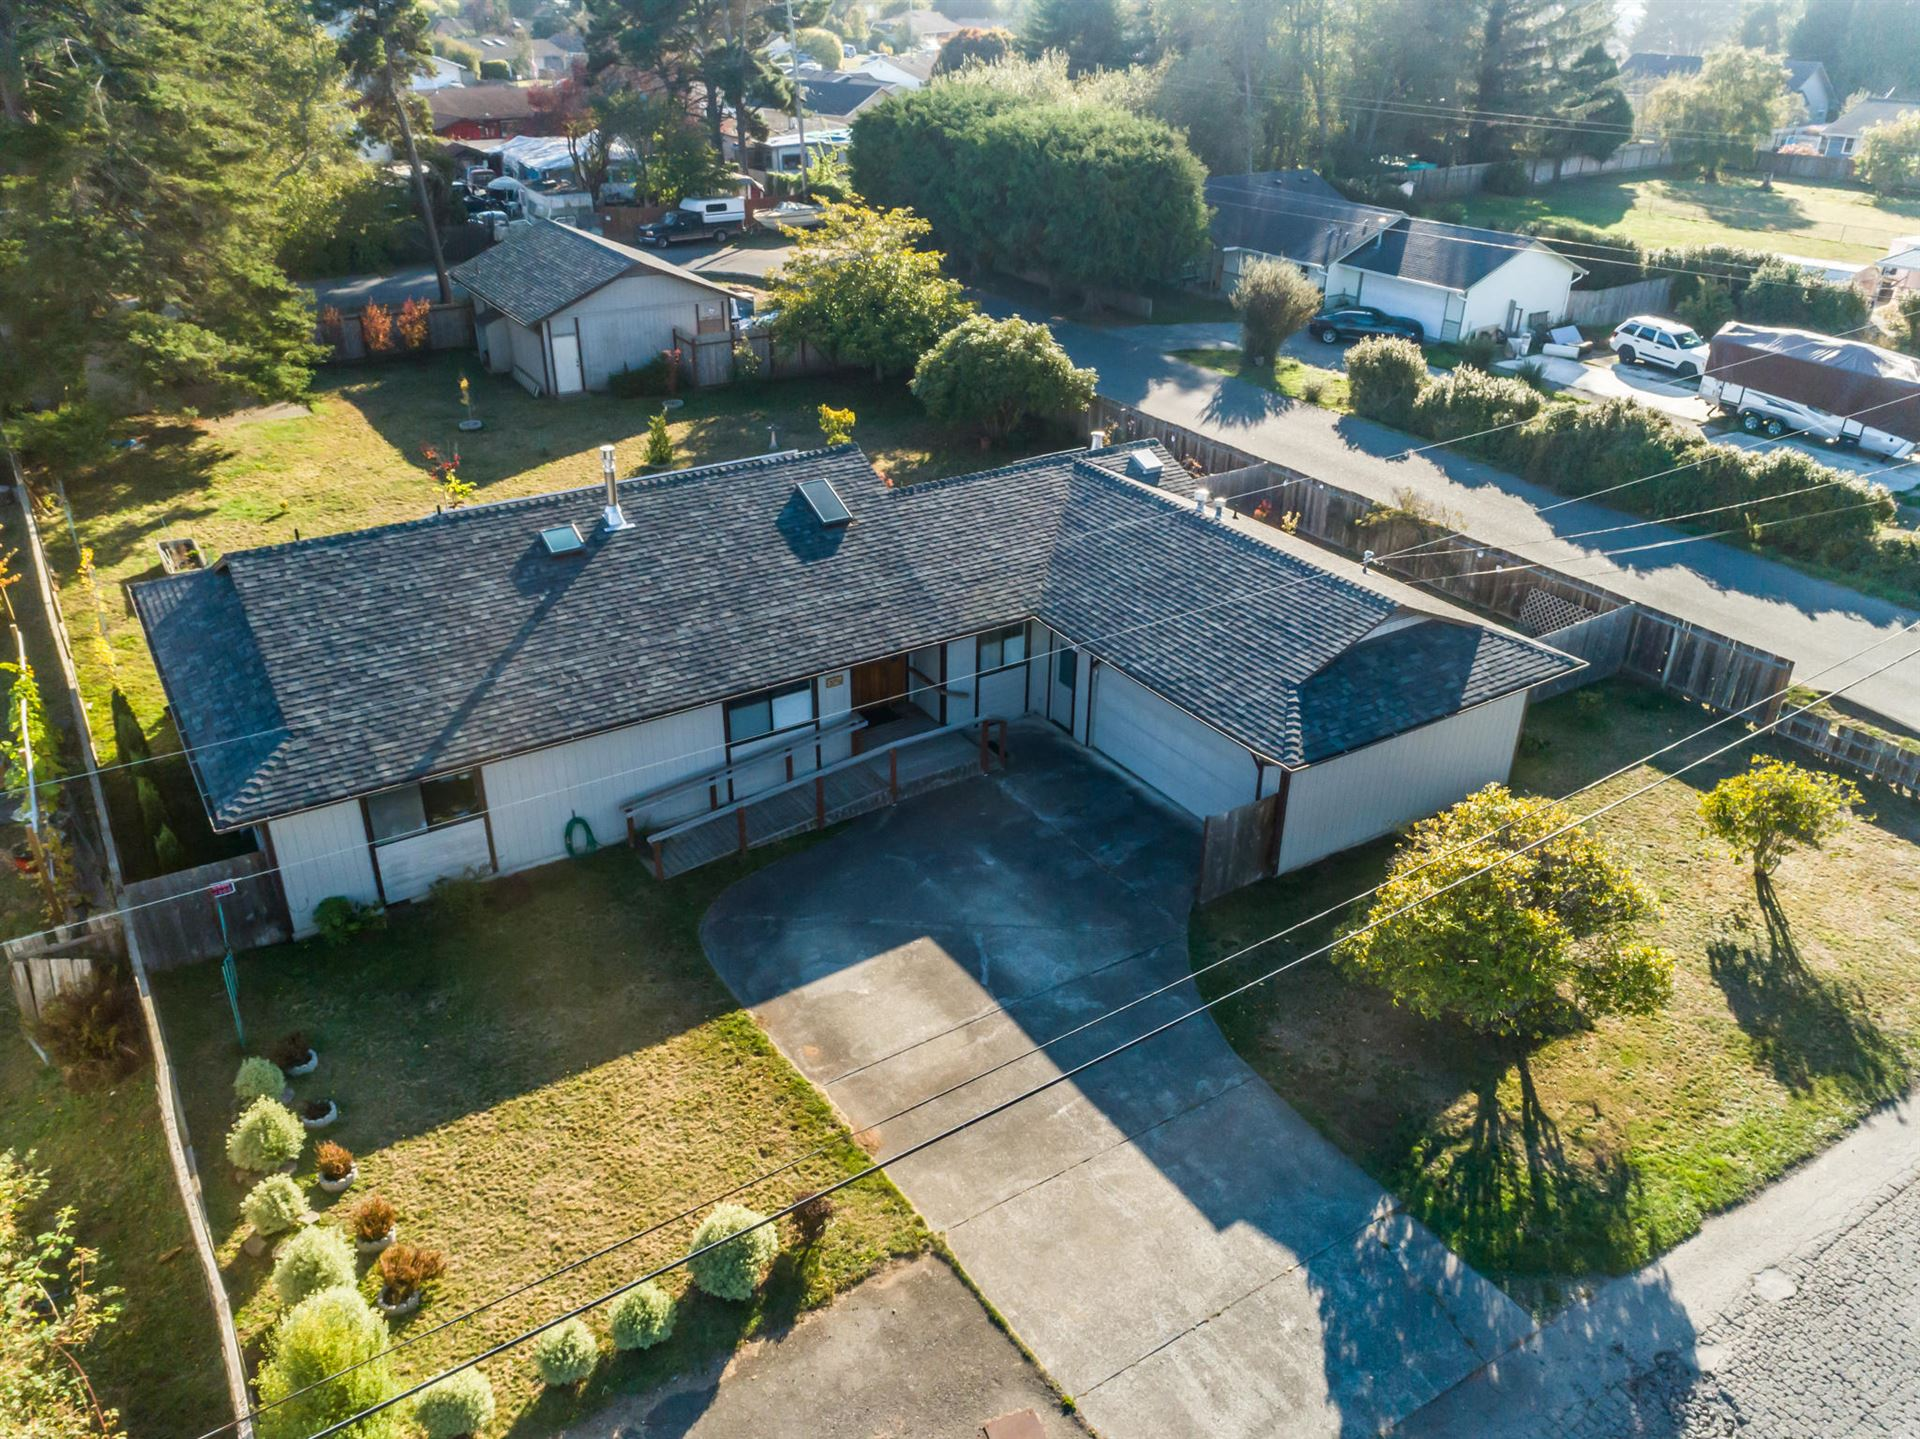 1870 Gwin Road, McKinleyville, CA 95519 - MLS#: 257695